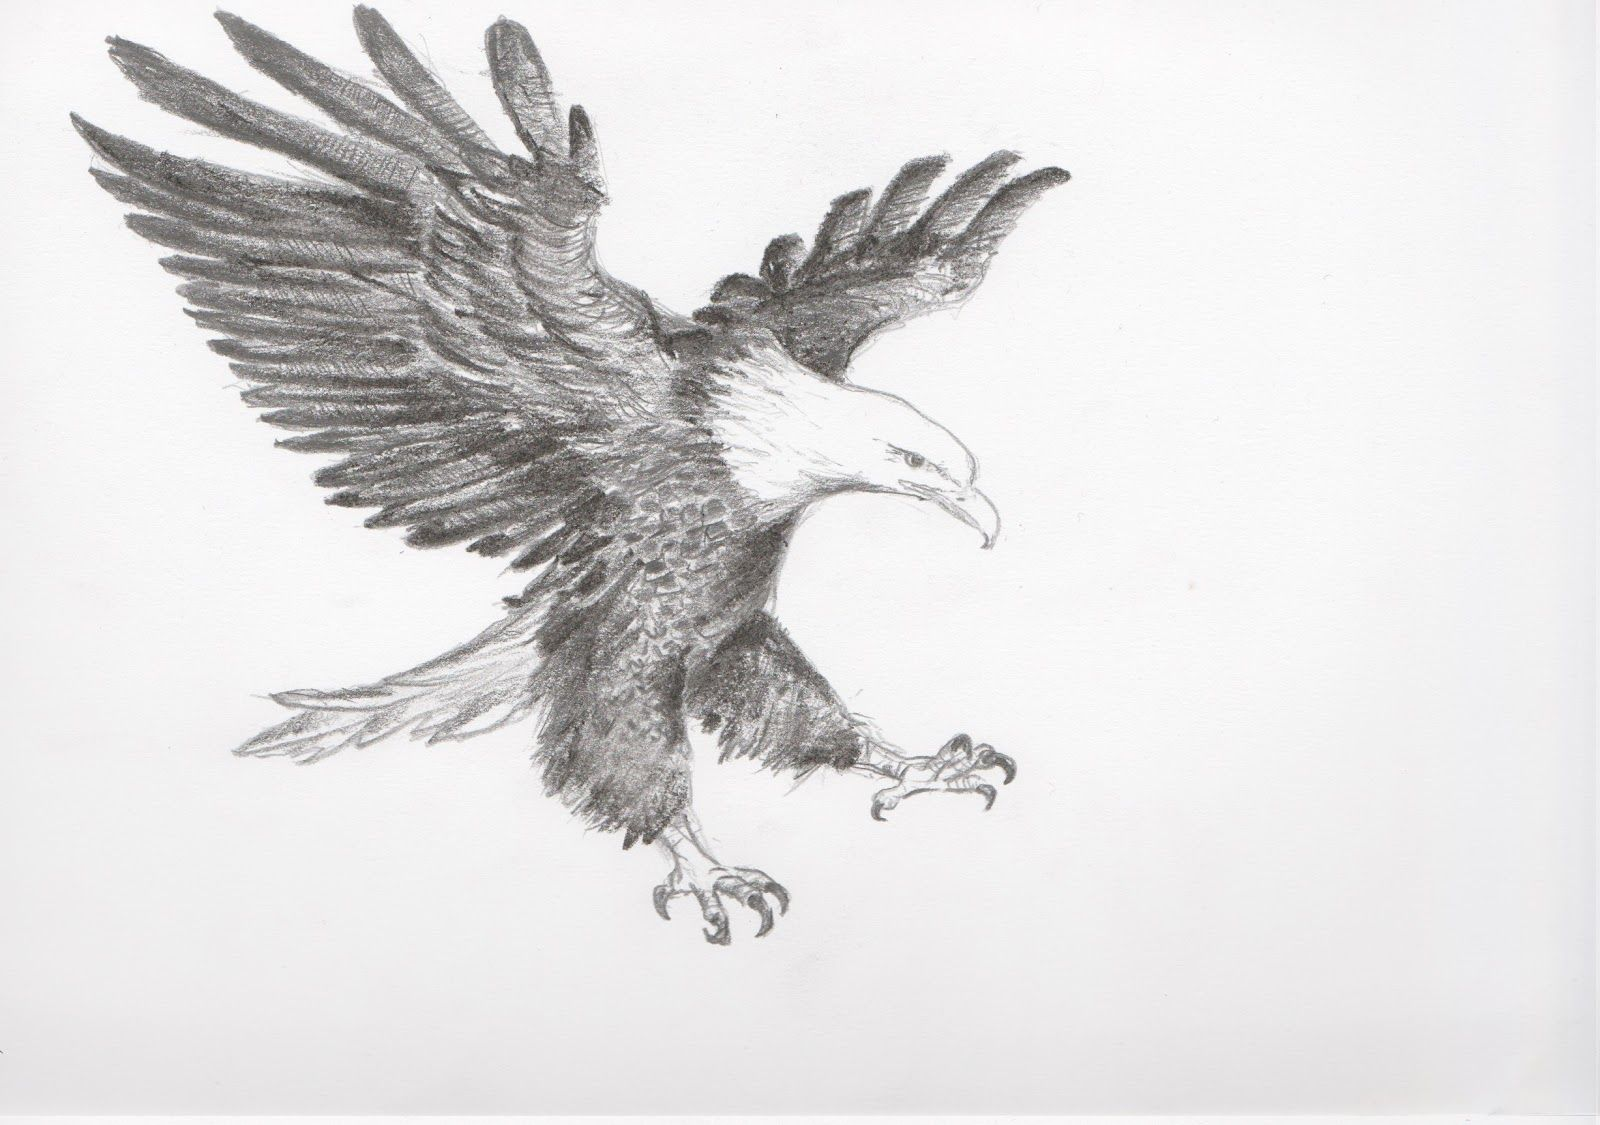 My life and around me flying eagle eagle sketch eagle drawing pencil sketch